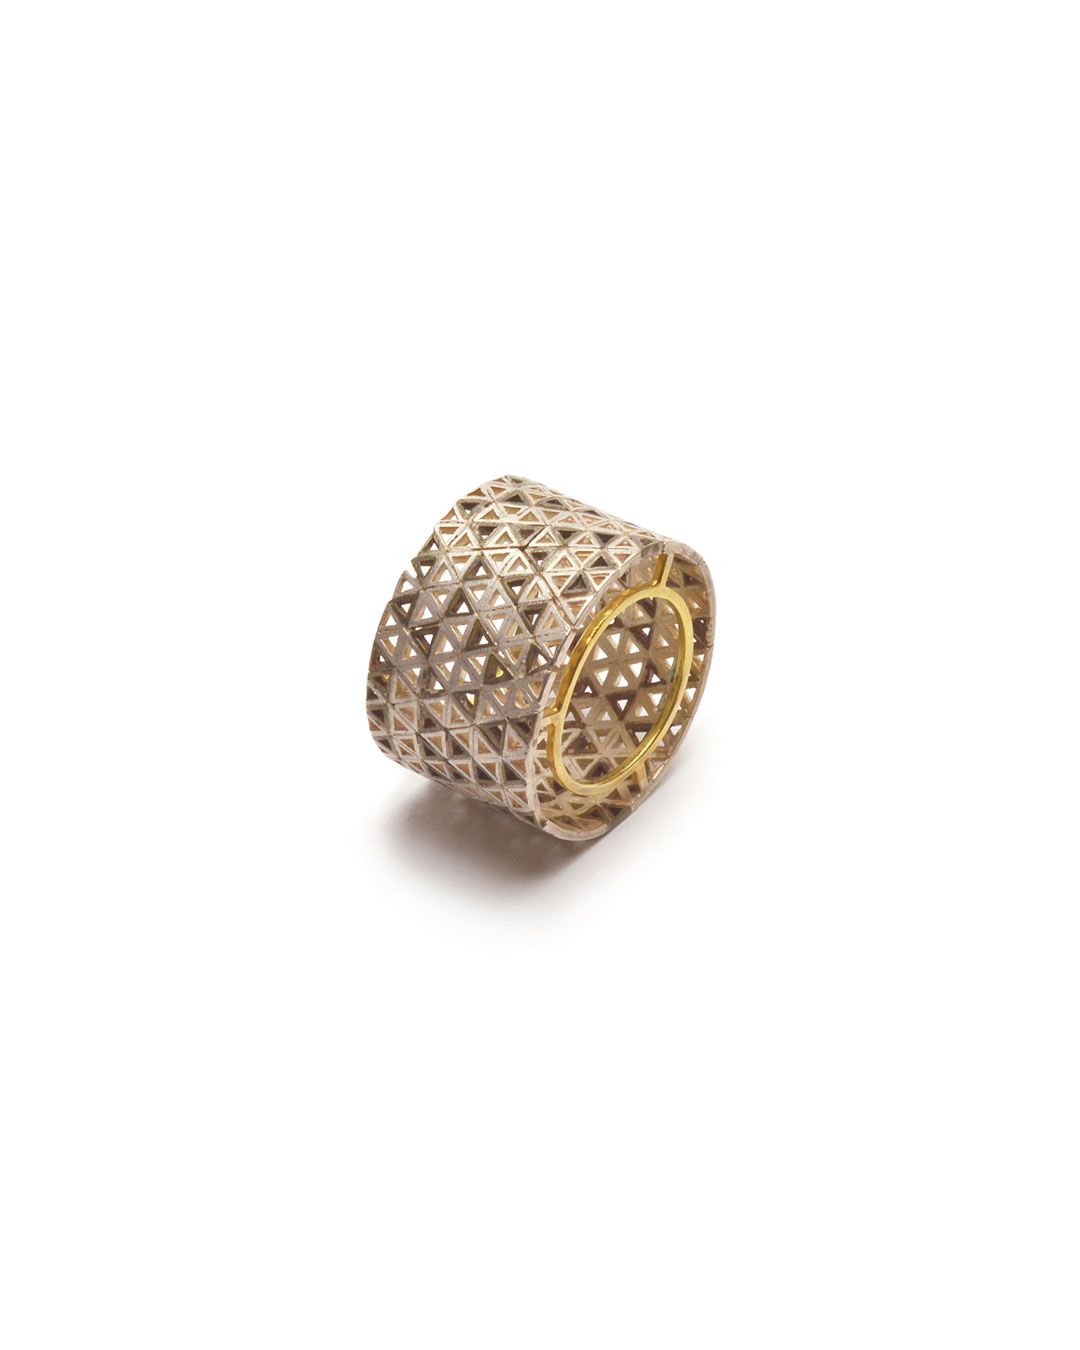 Stefano Marchetti, untitled, 2015, ring; gold, silver, 28 x 28 x 18 mm, €4000